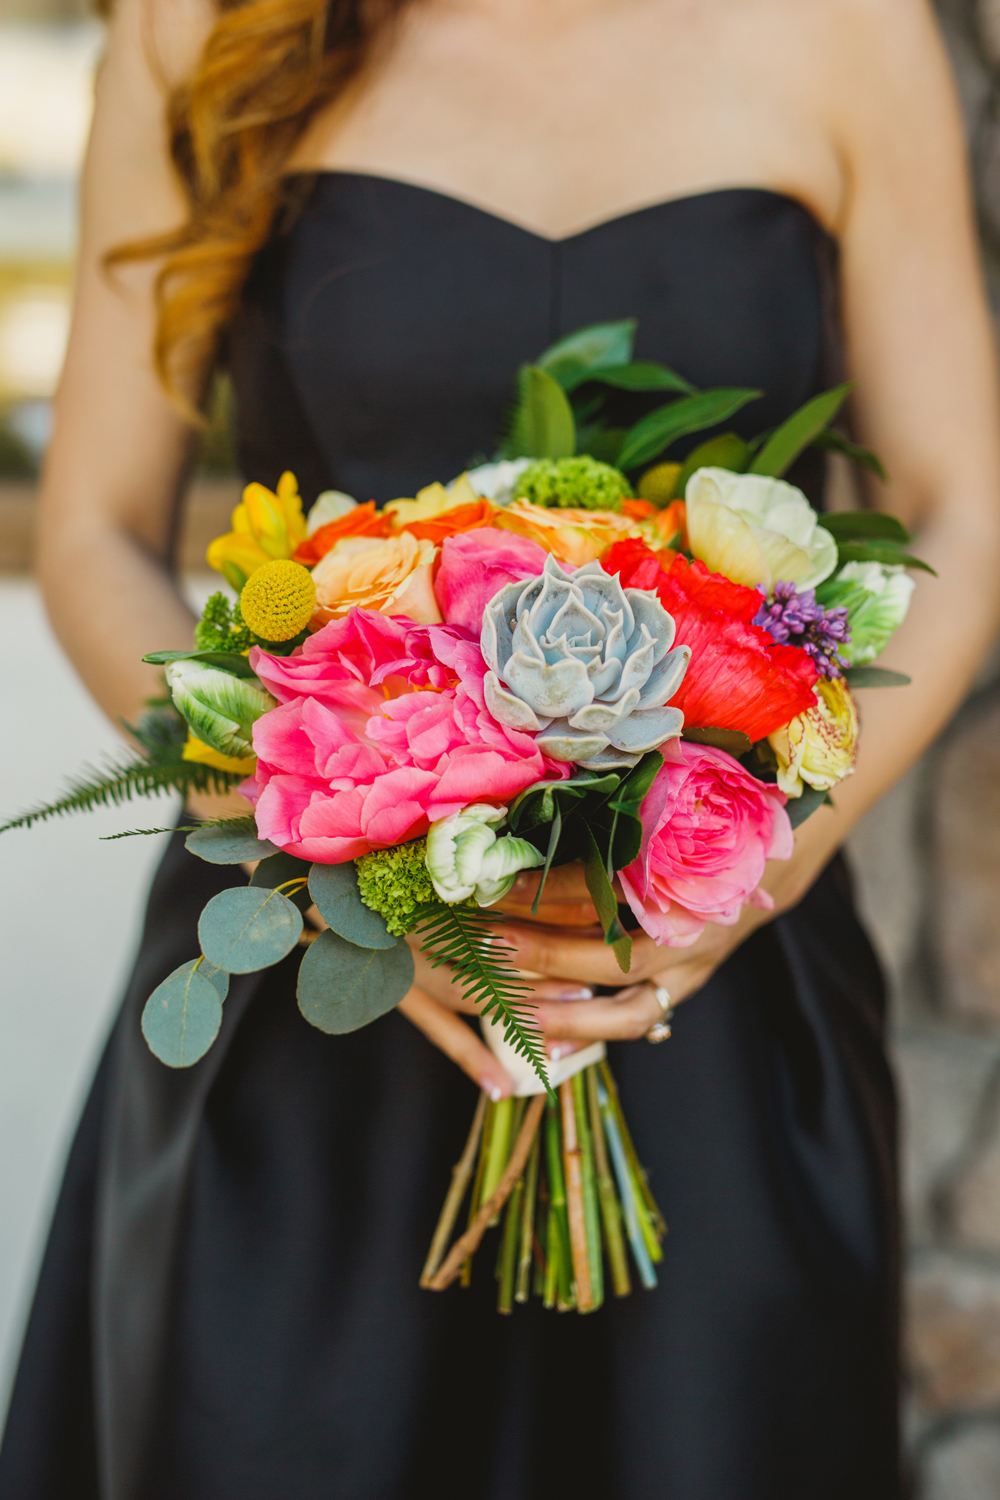 bright bridesmaid bouquets - photo by Priscila Valentina http://ruffledblog.com/whimsical-vibrant-laguna-beach-wedding